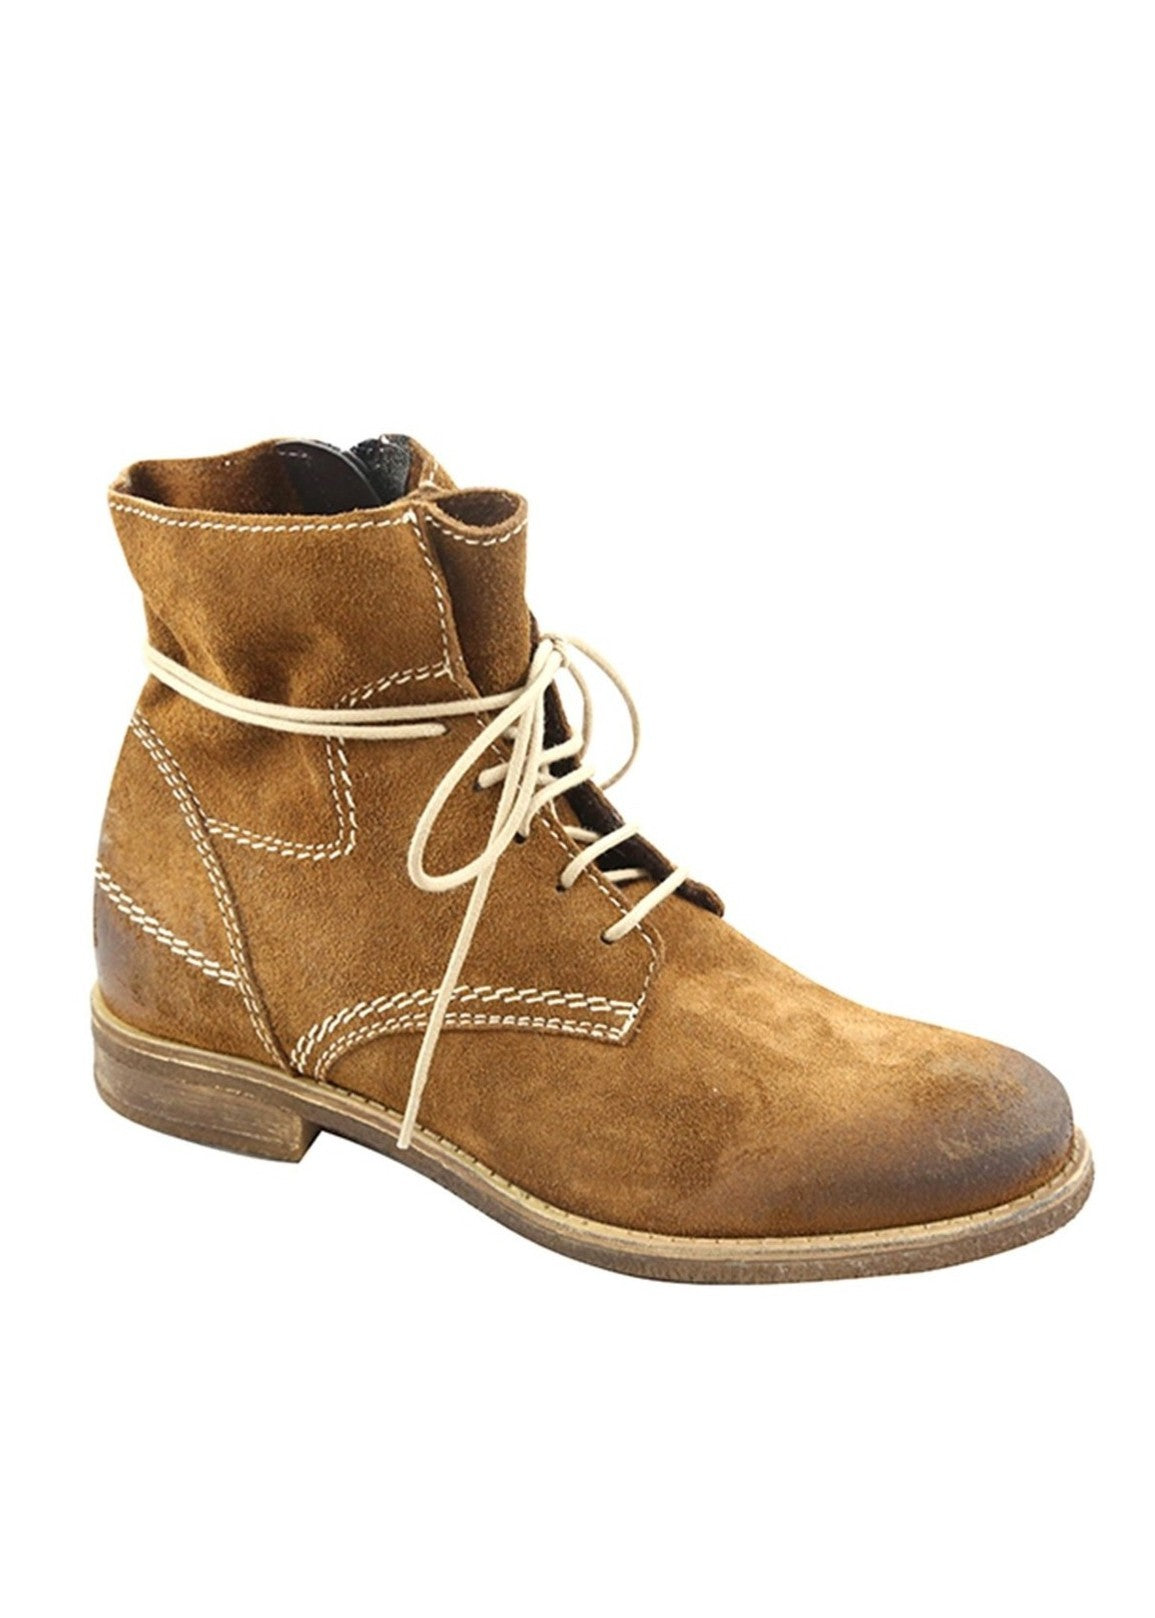 ADI - Suede Leather Lace-up Boots